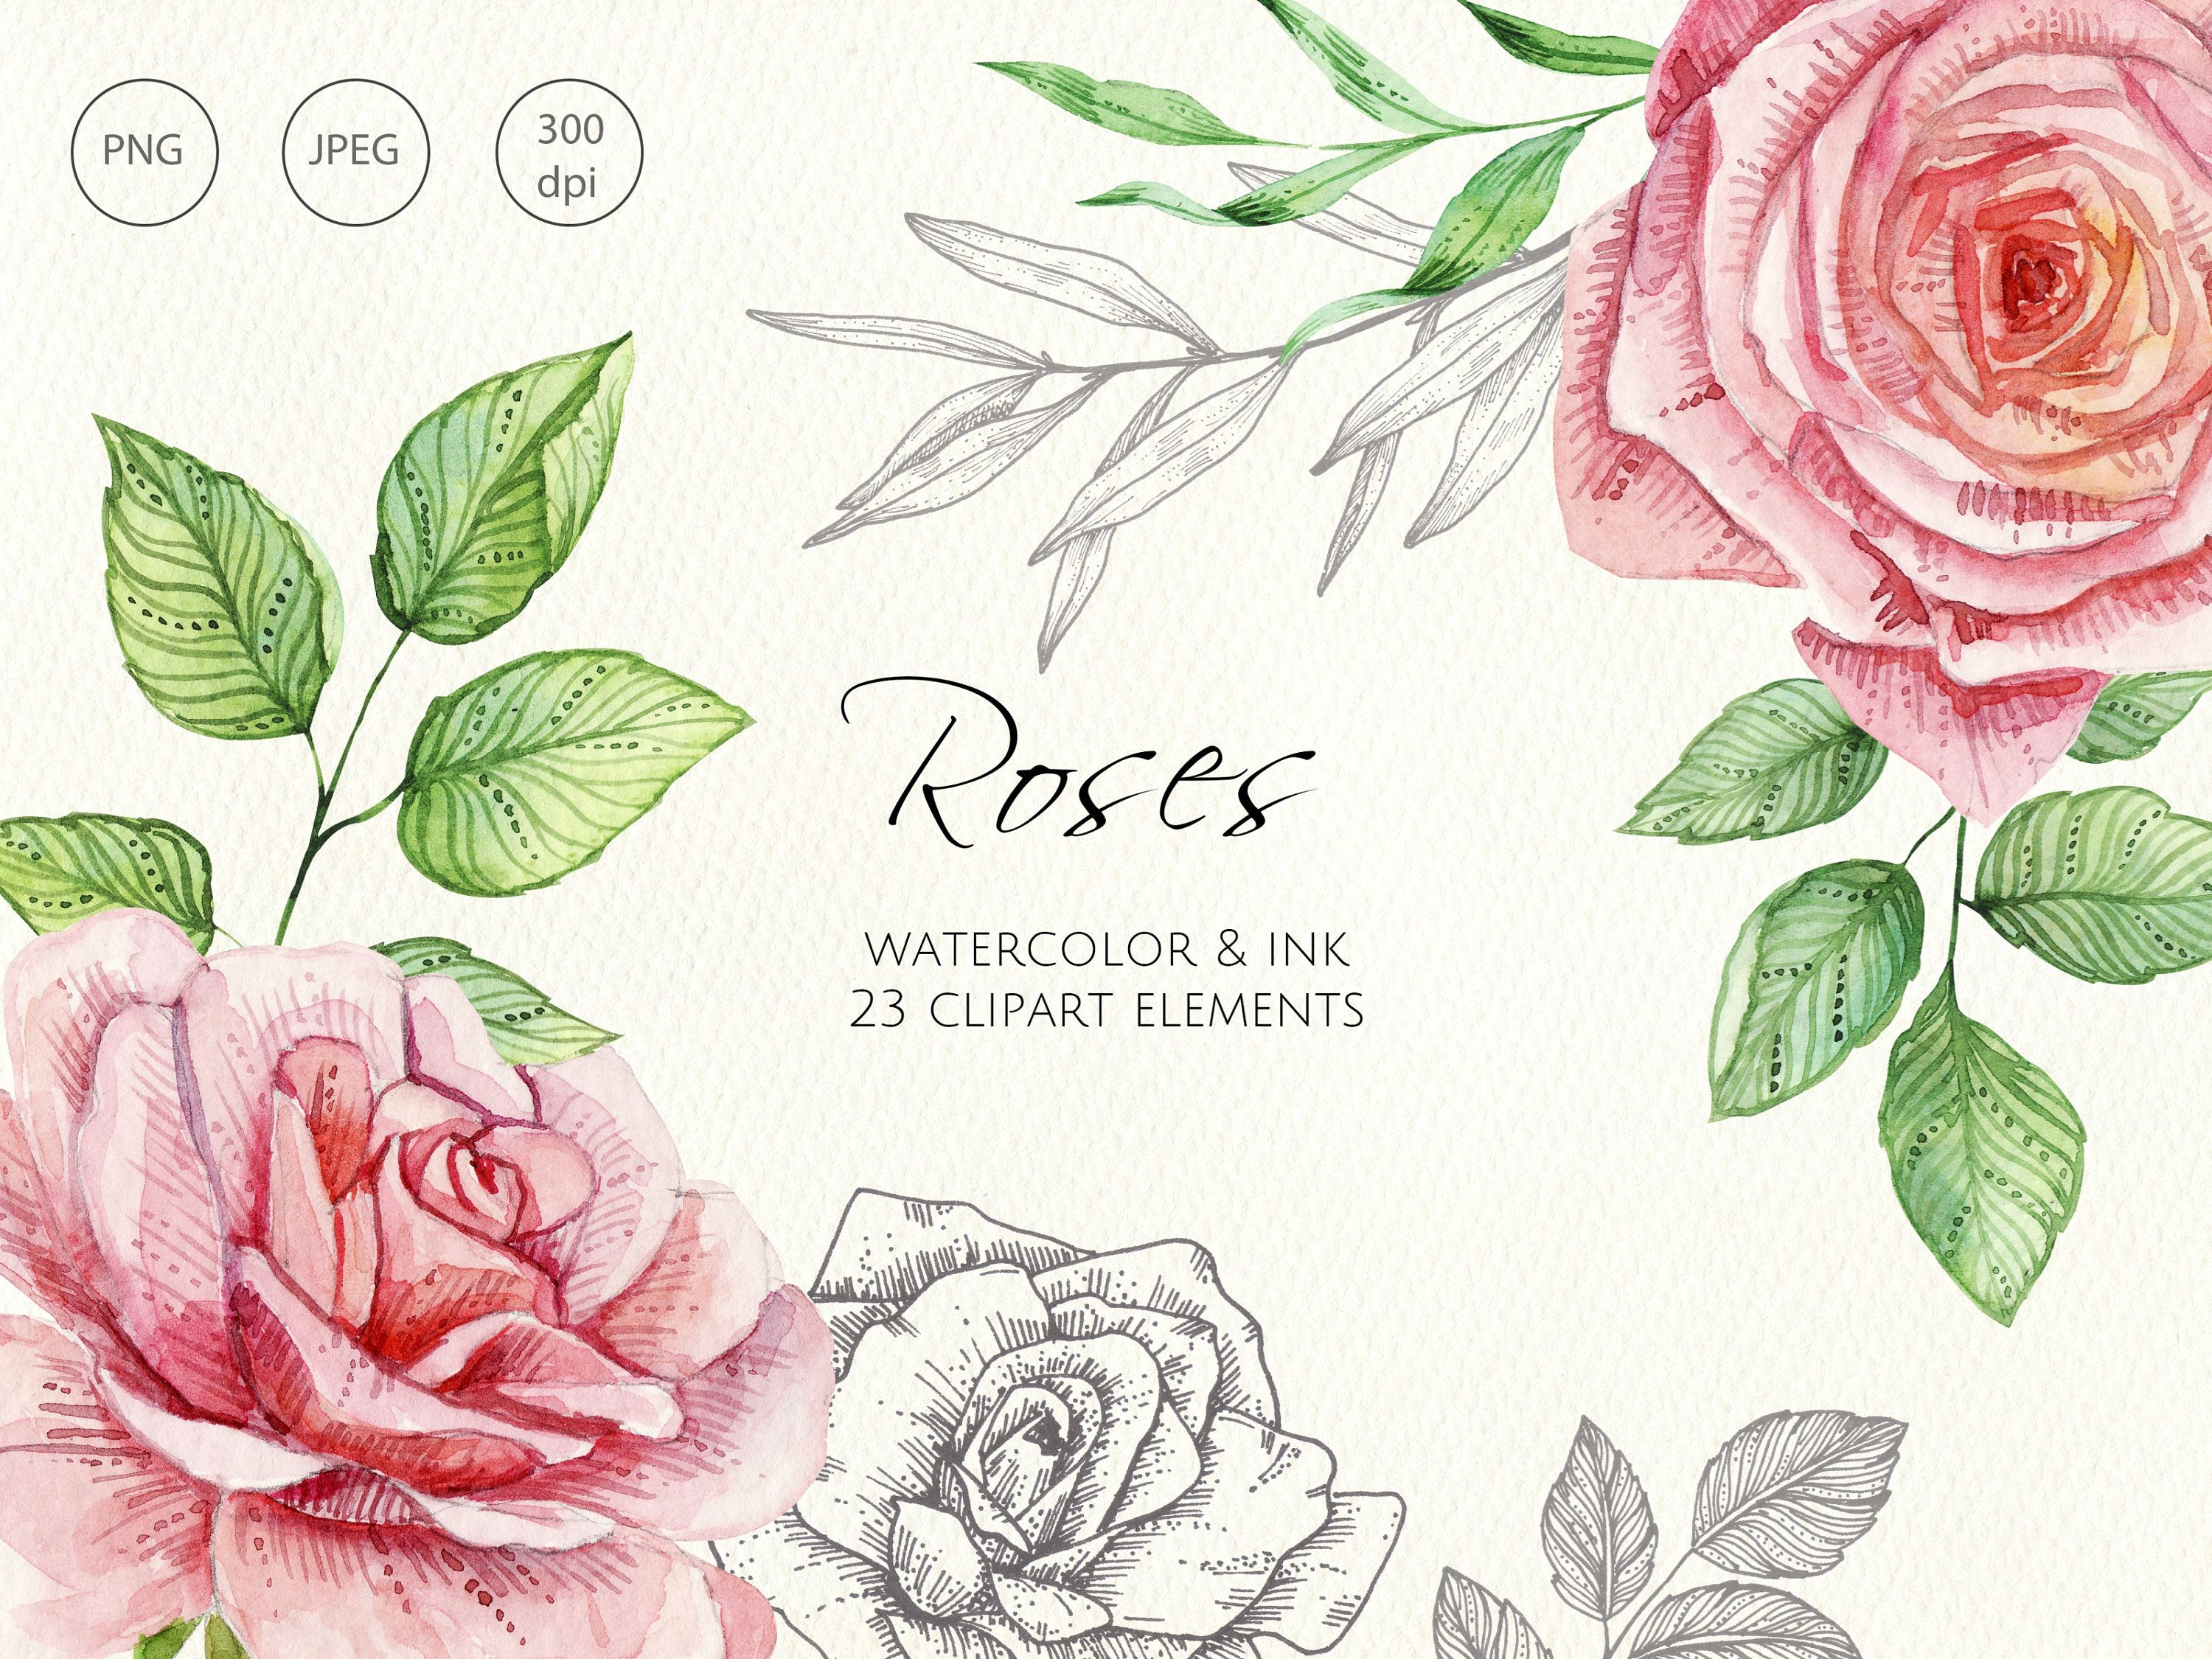 Watercolor Roses Flowers Isolated Roses Png Flowers Png Etsy Watercolor Rose Linear Art Watercolor And Ink